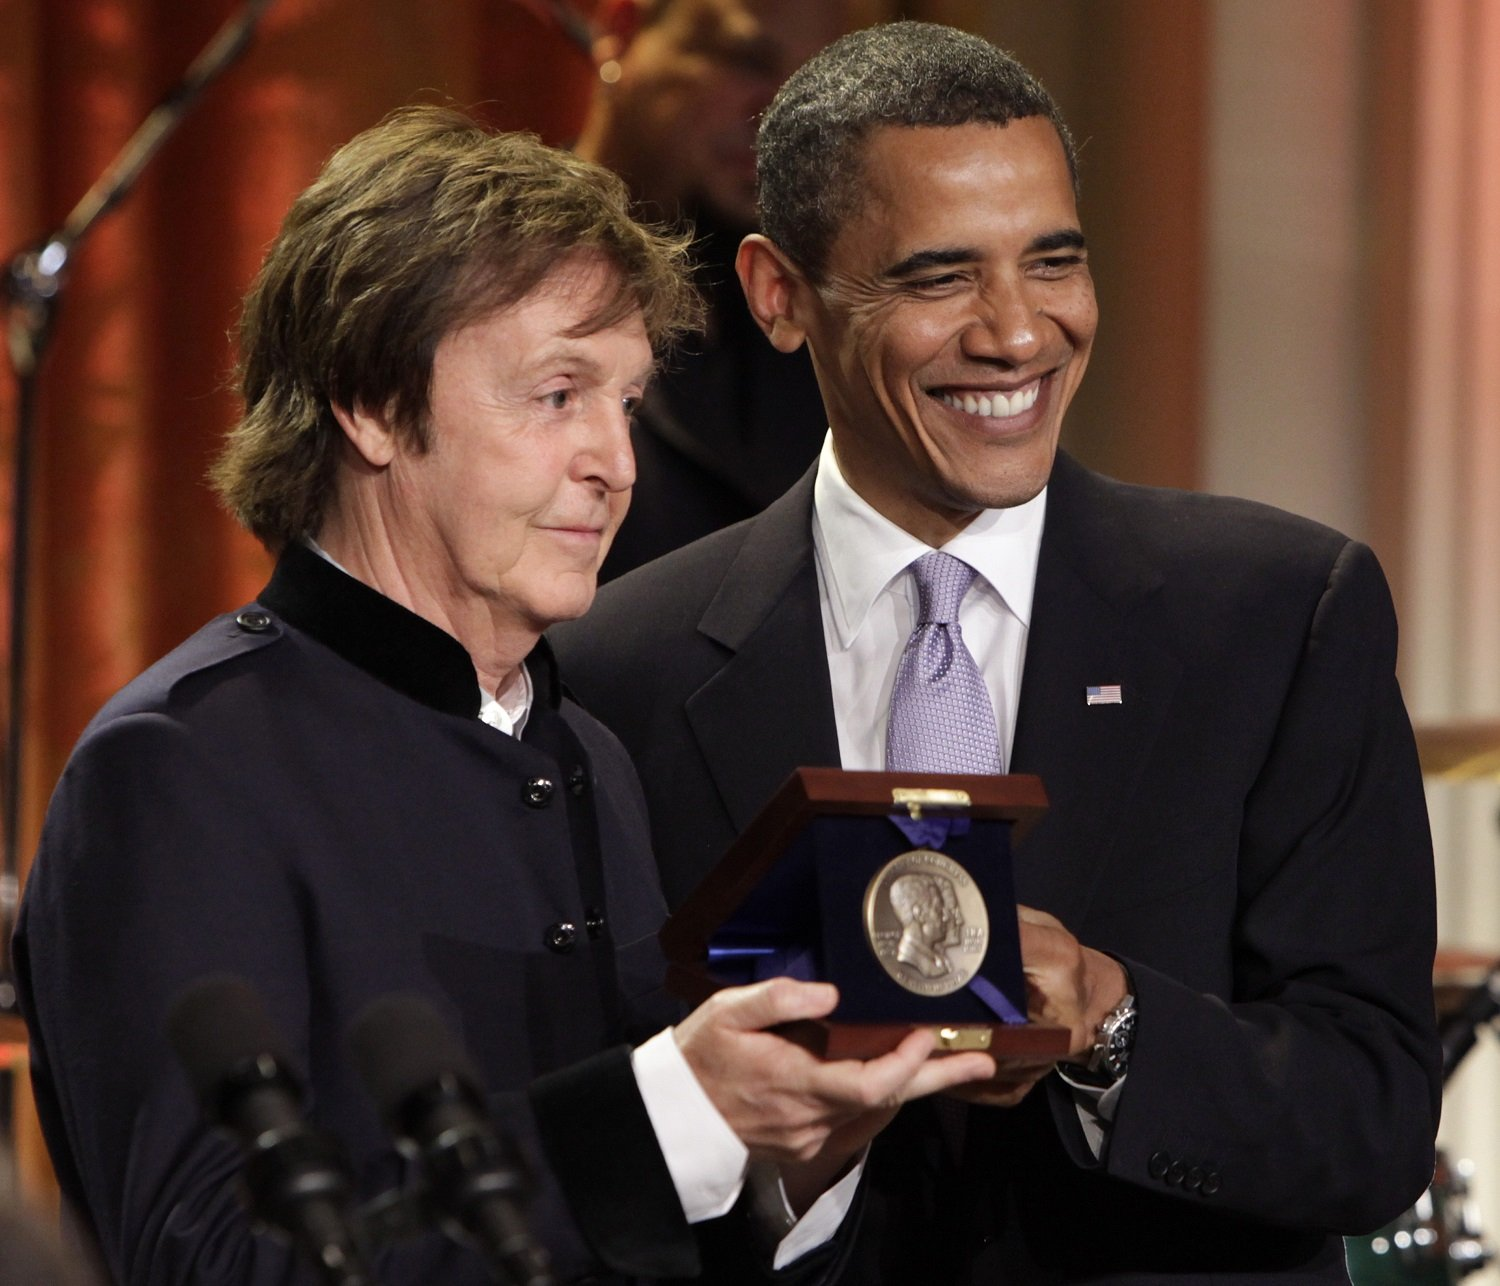 Barack Obama presents Paul McCartney with the third Gershwin Prize for Popular Song